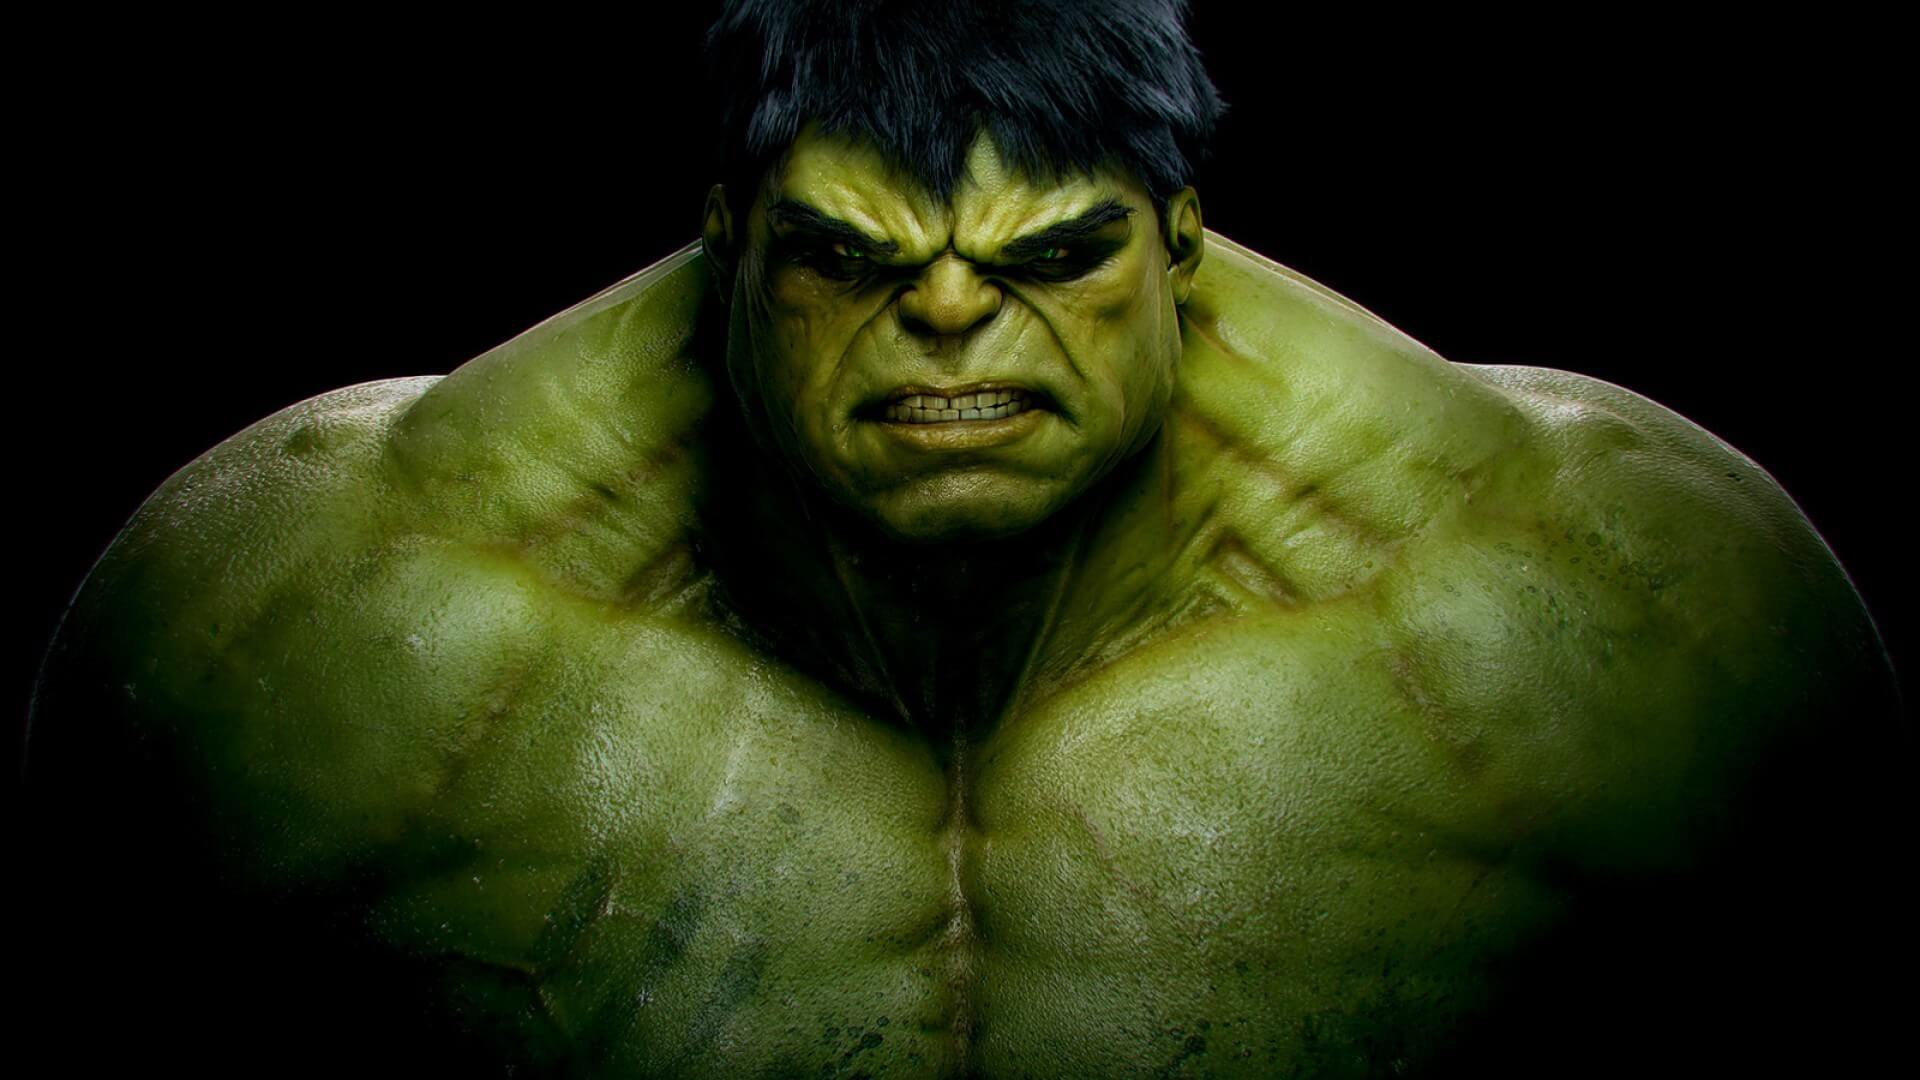 The Green Conundrum: Why Neither Solo Hulk Film Has Been Incredible